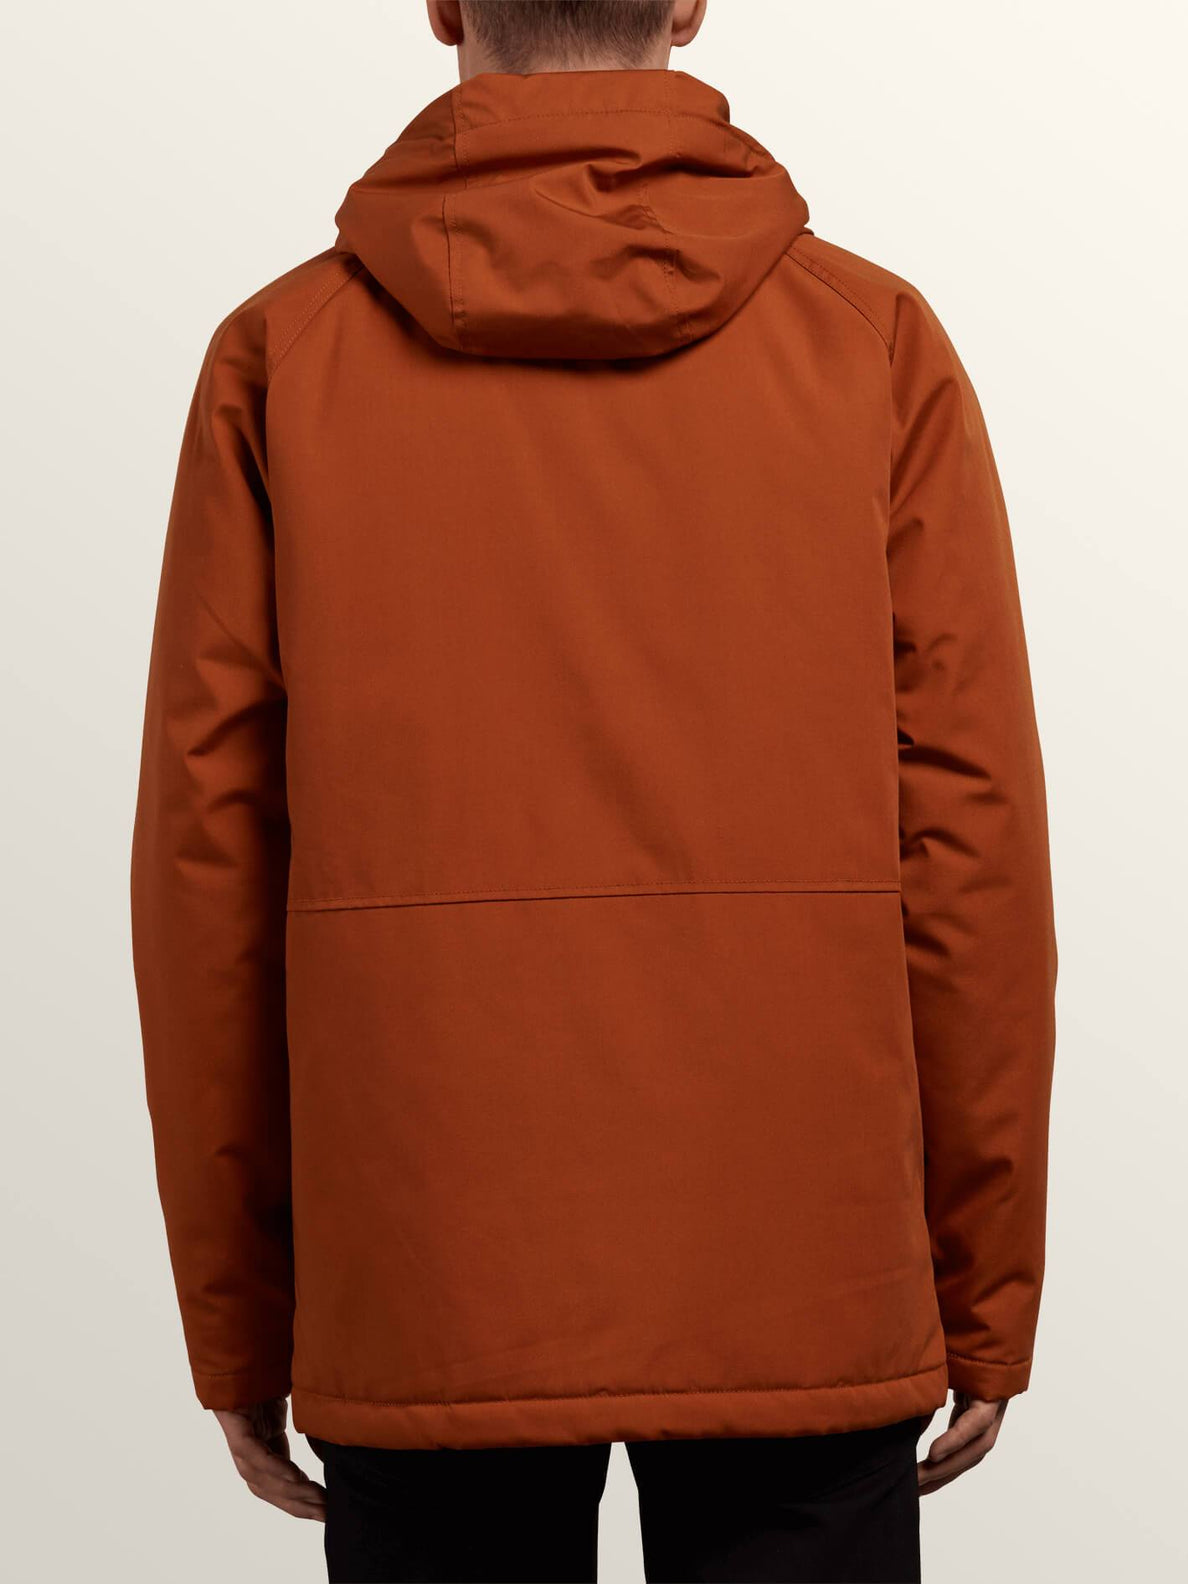 Renton Winter Parka In Hazelnut, Back View